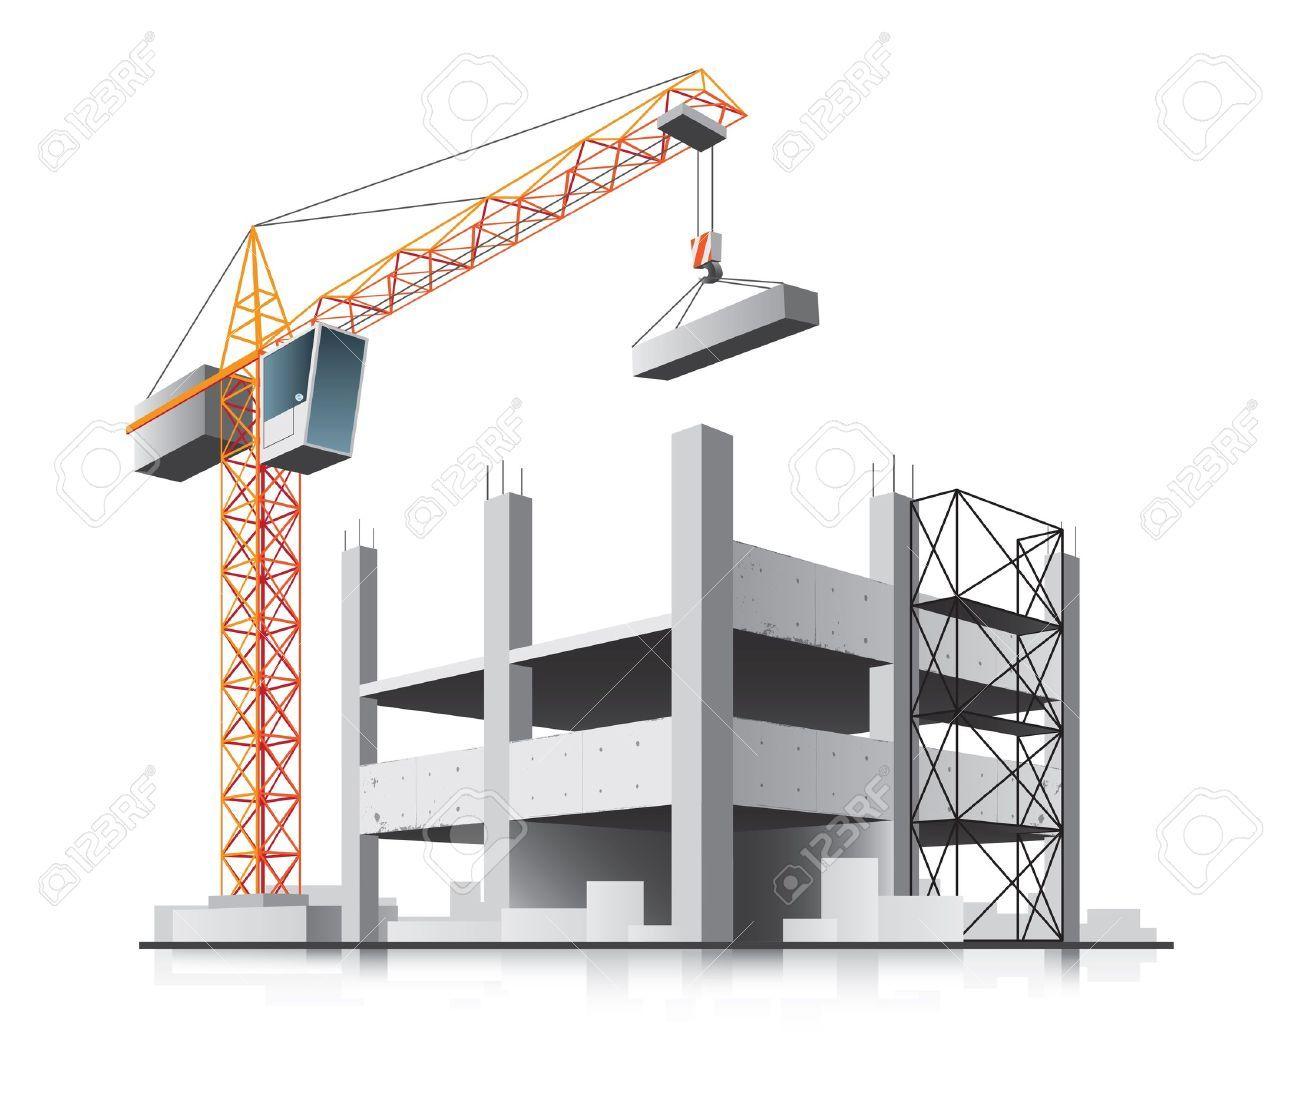 Building construction cliparts image library library Clipart building construction 4 » Clipart Portal image library library